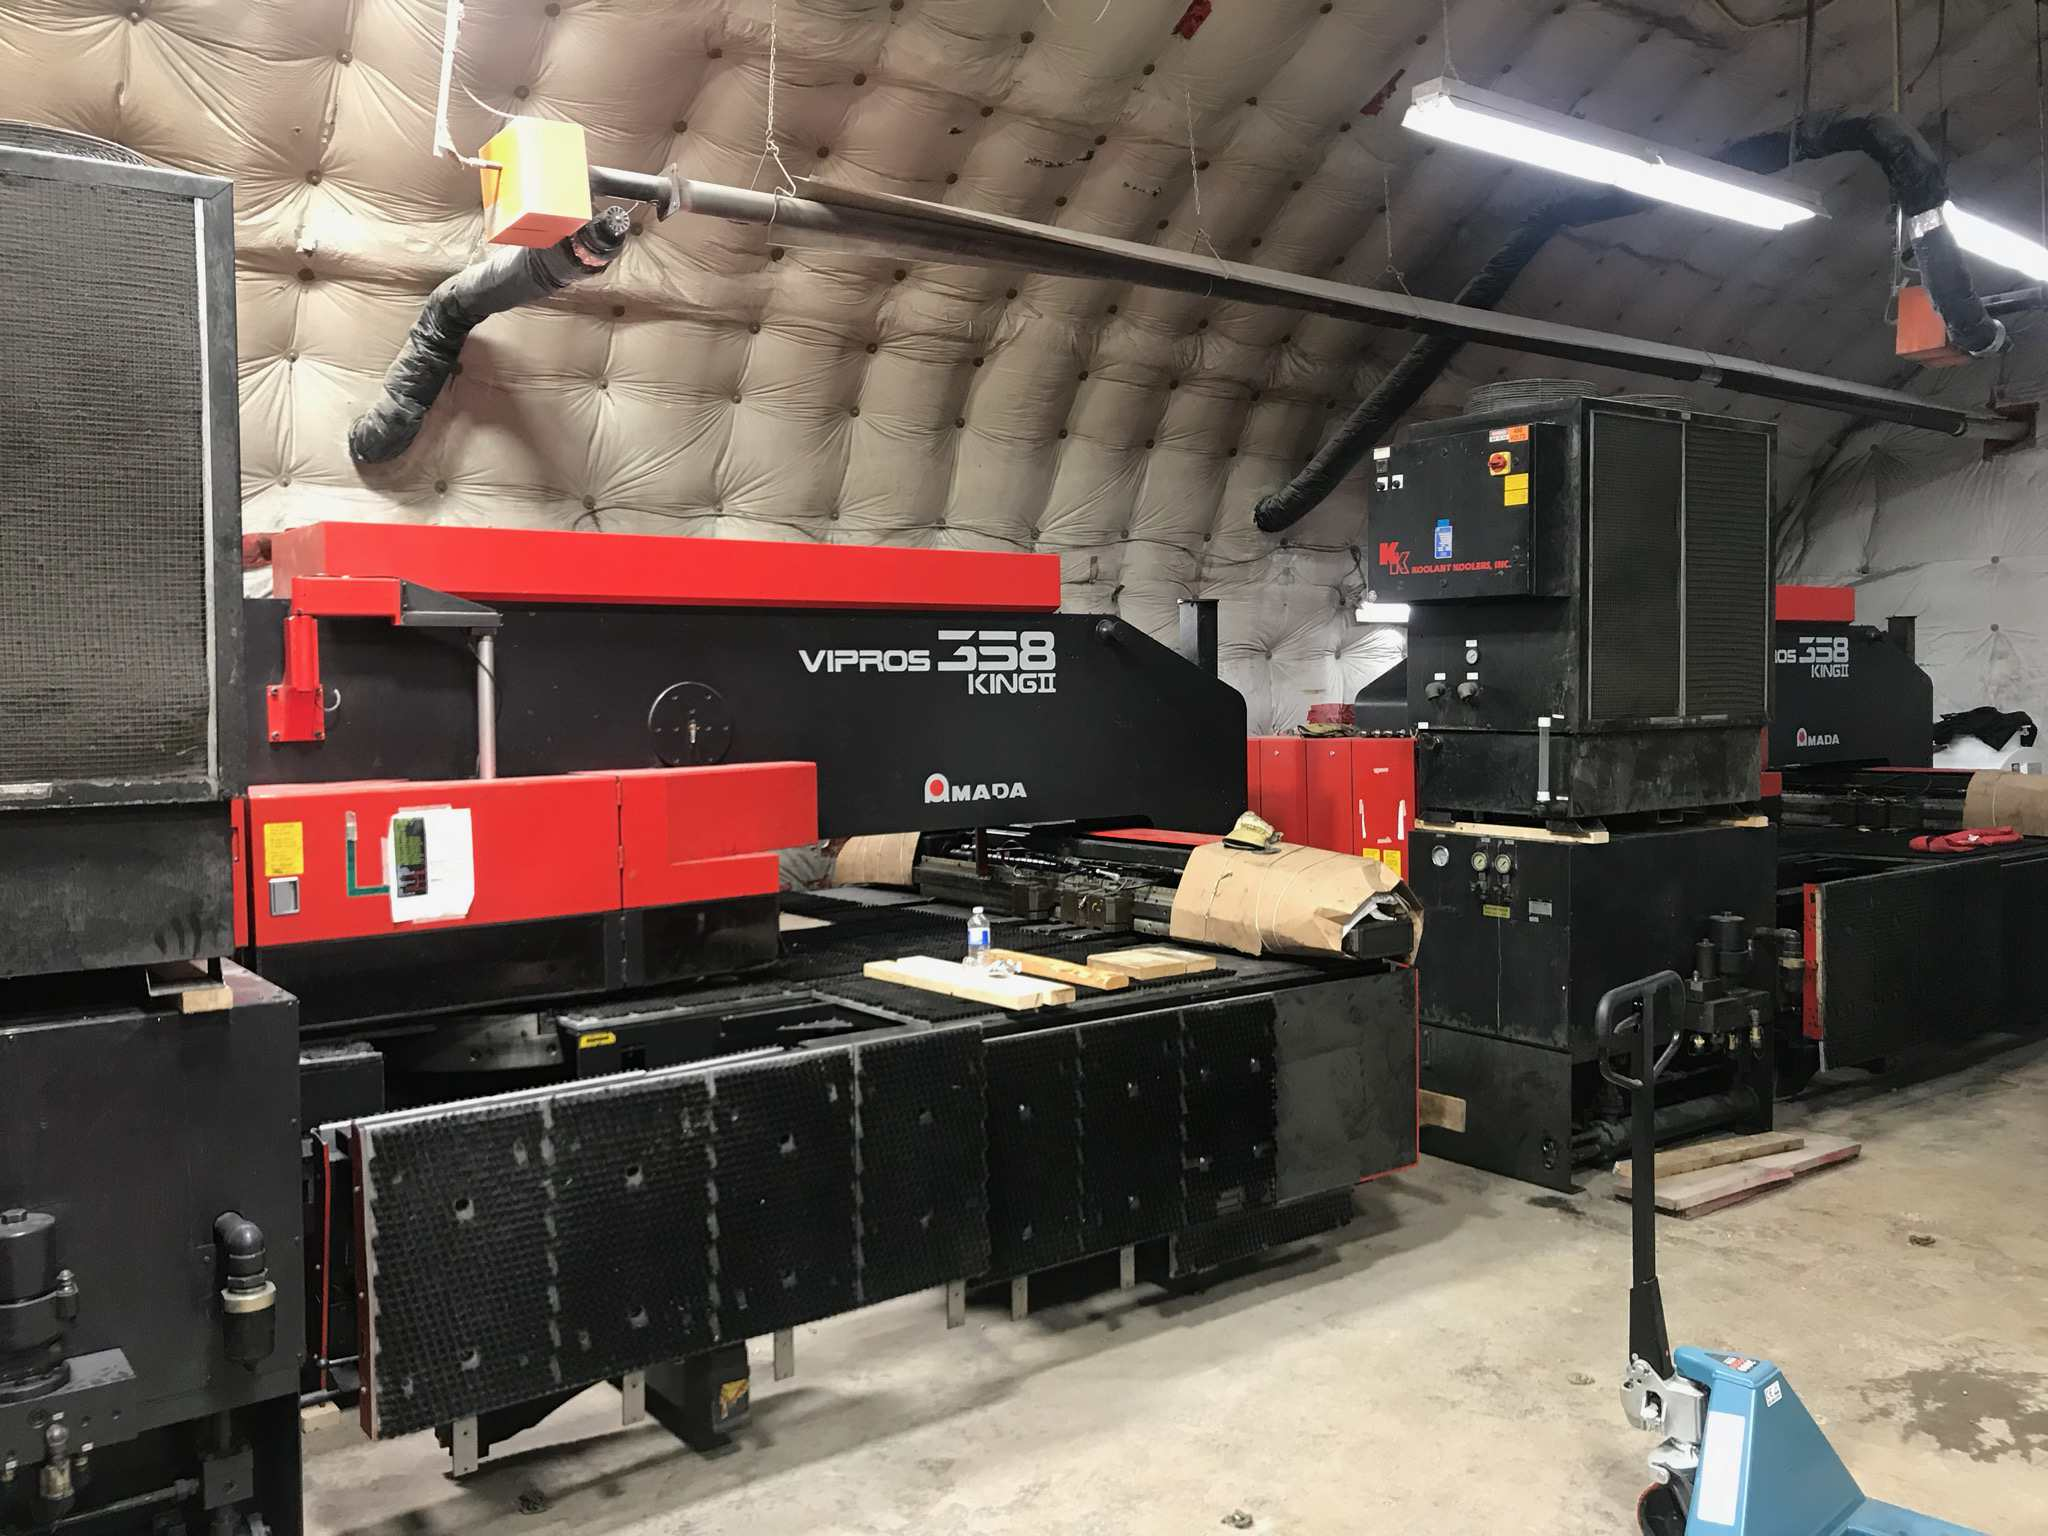 2000 Amada VIPROS 358K II Turret Punch Press